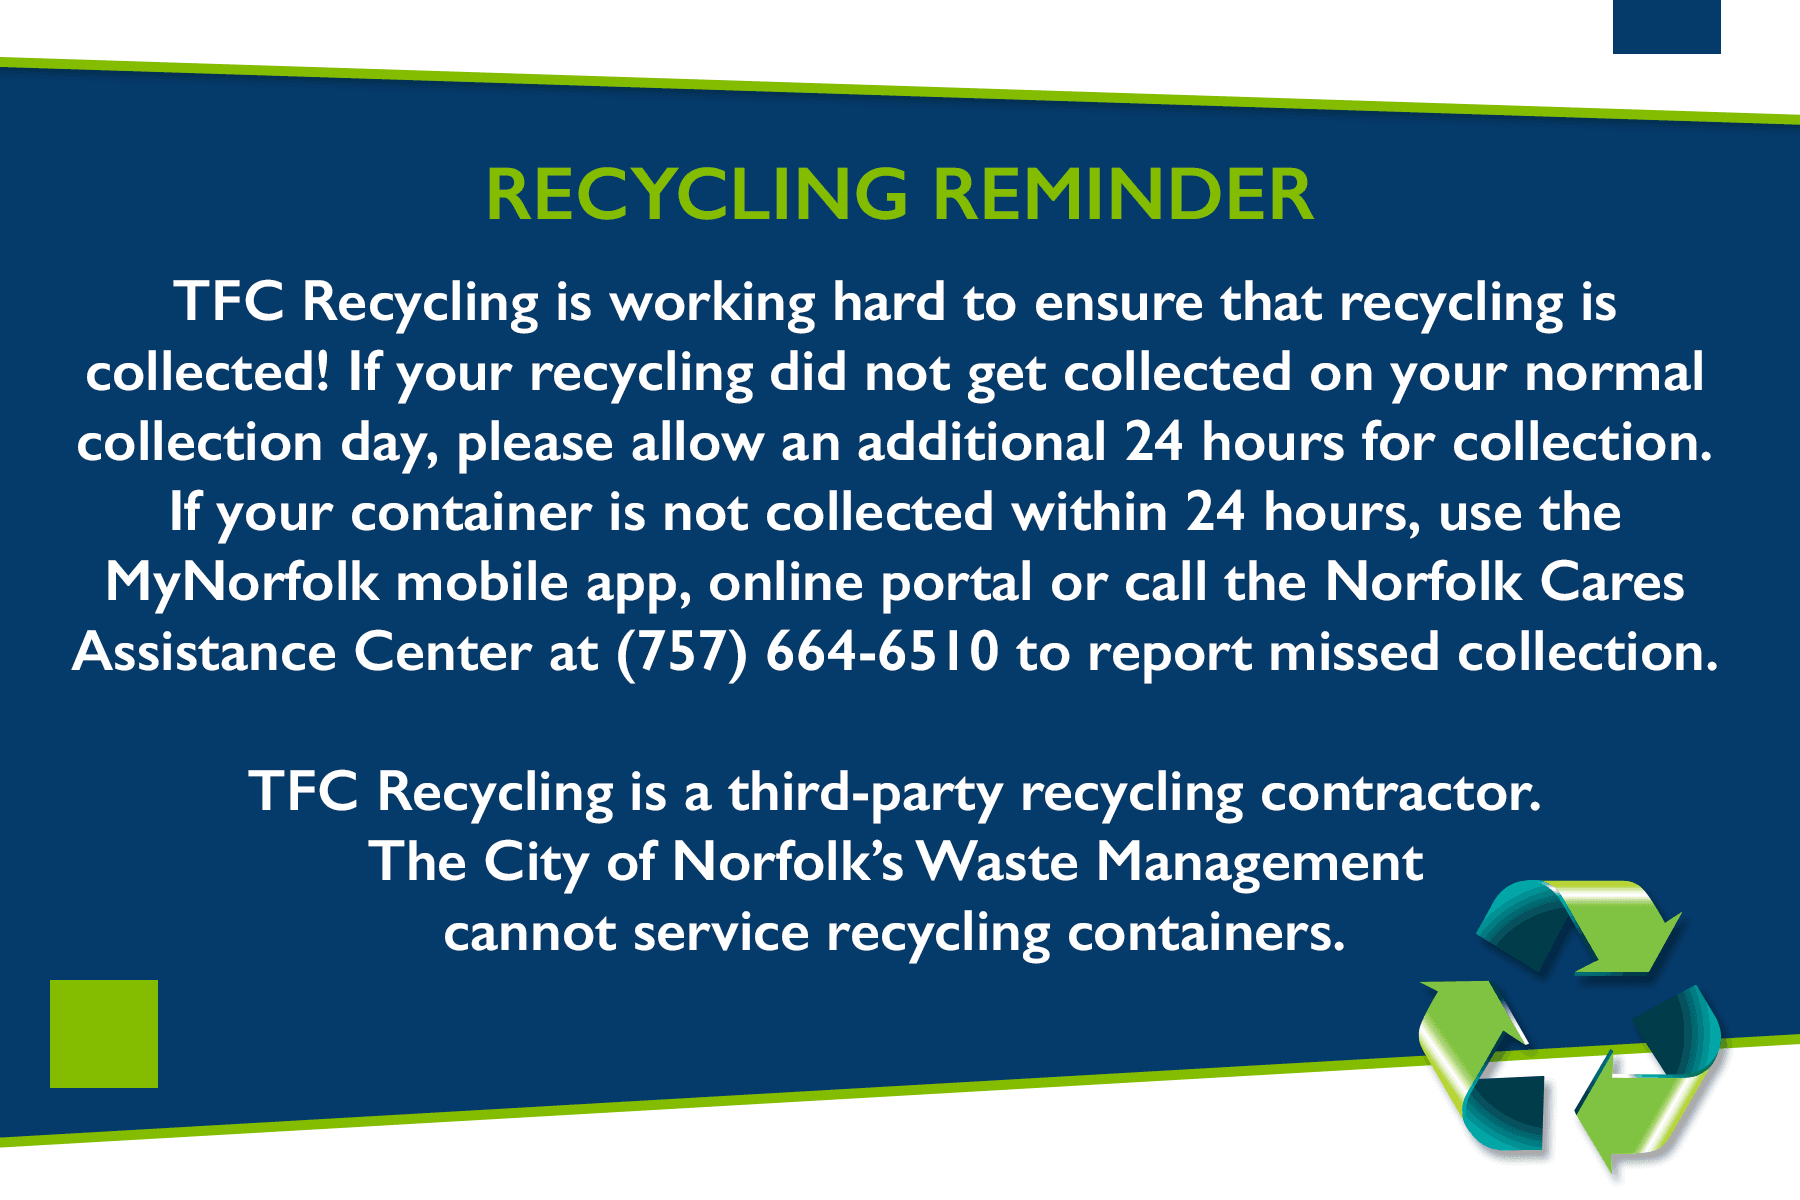 Recycling Reminder Image Link